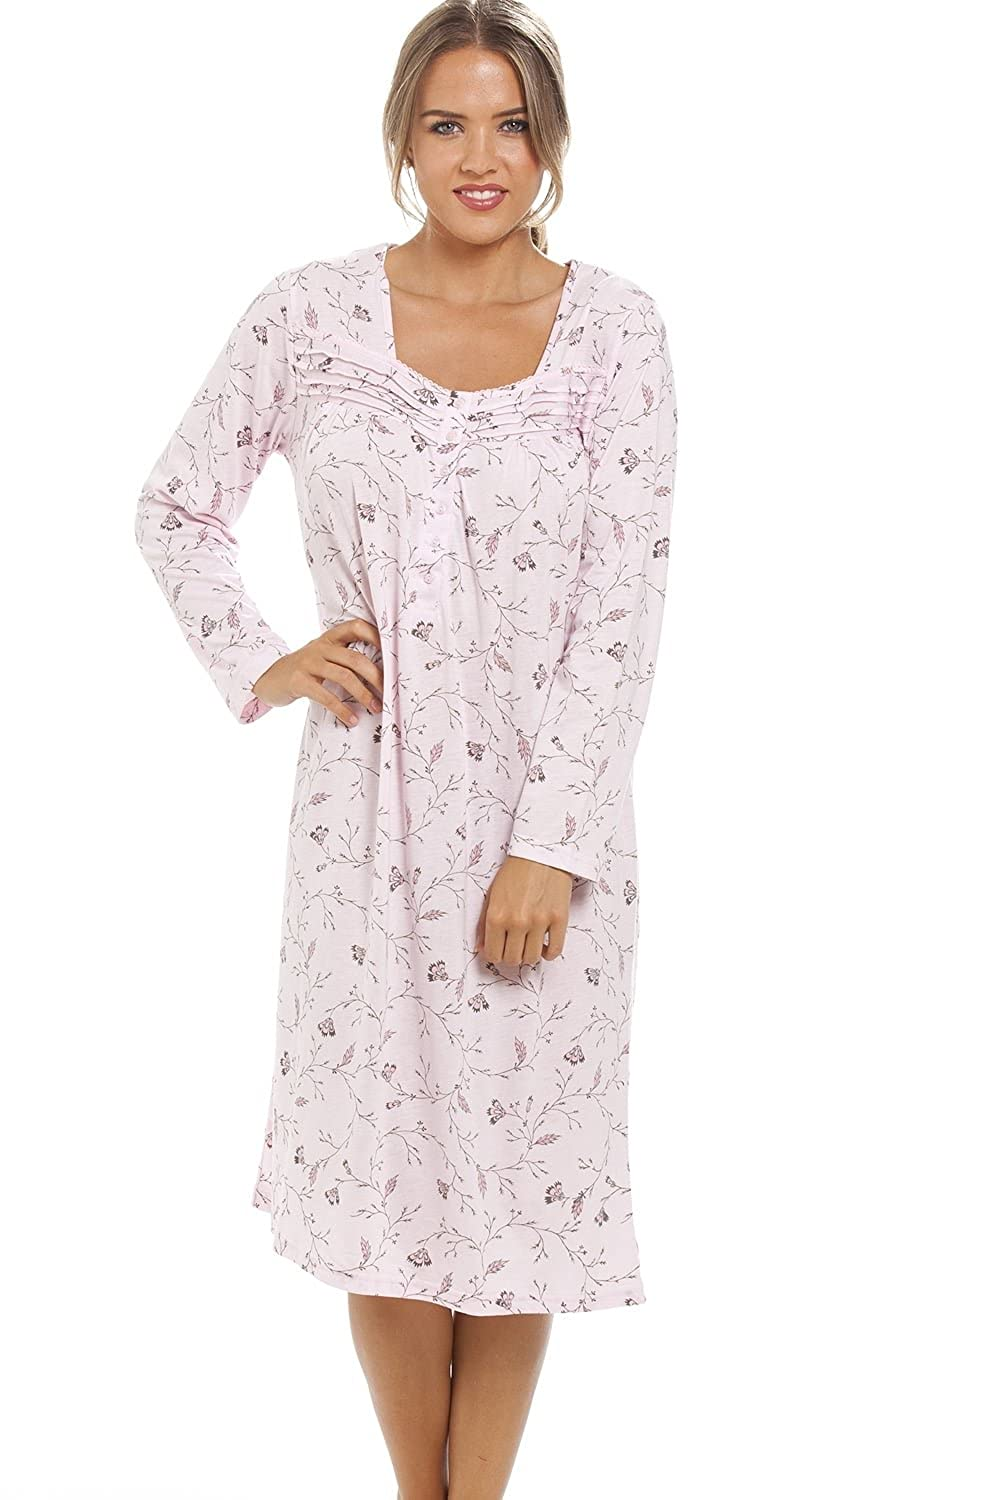 Camille Womens Ladies Classic Floral Print Long Sleeve Pink Nightdress